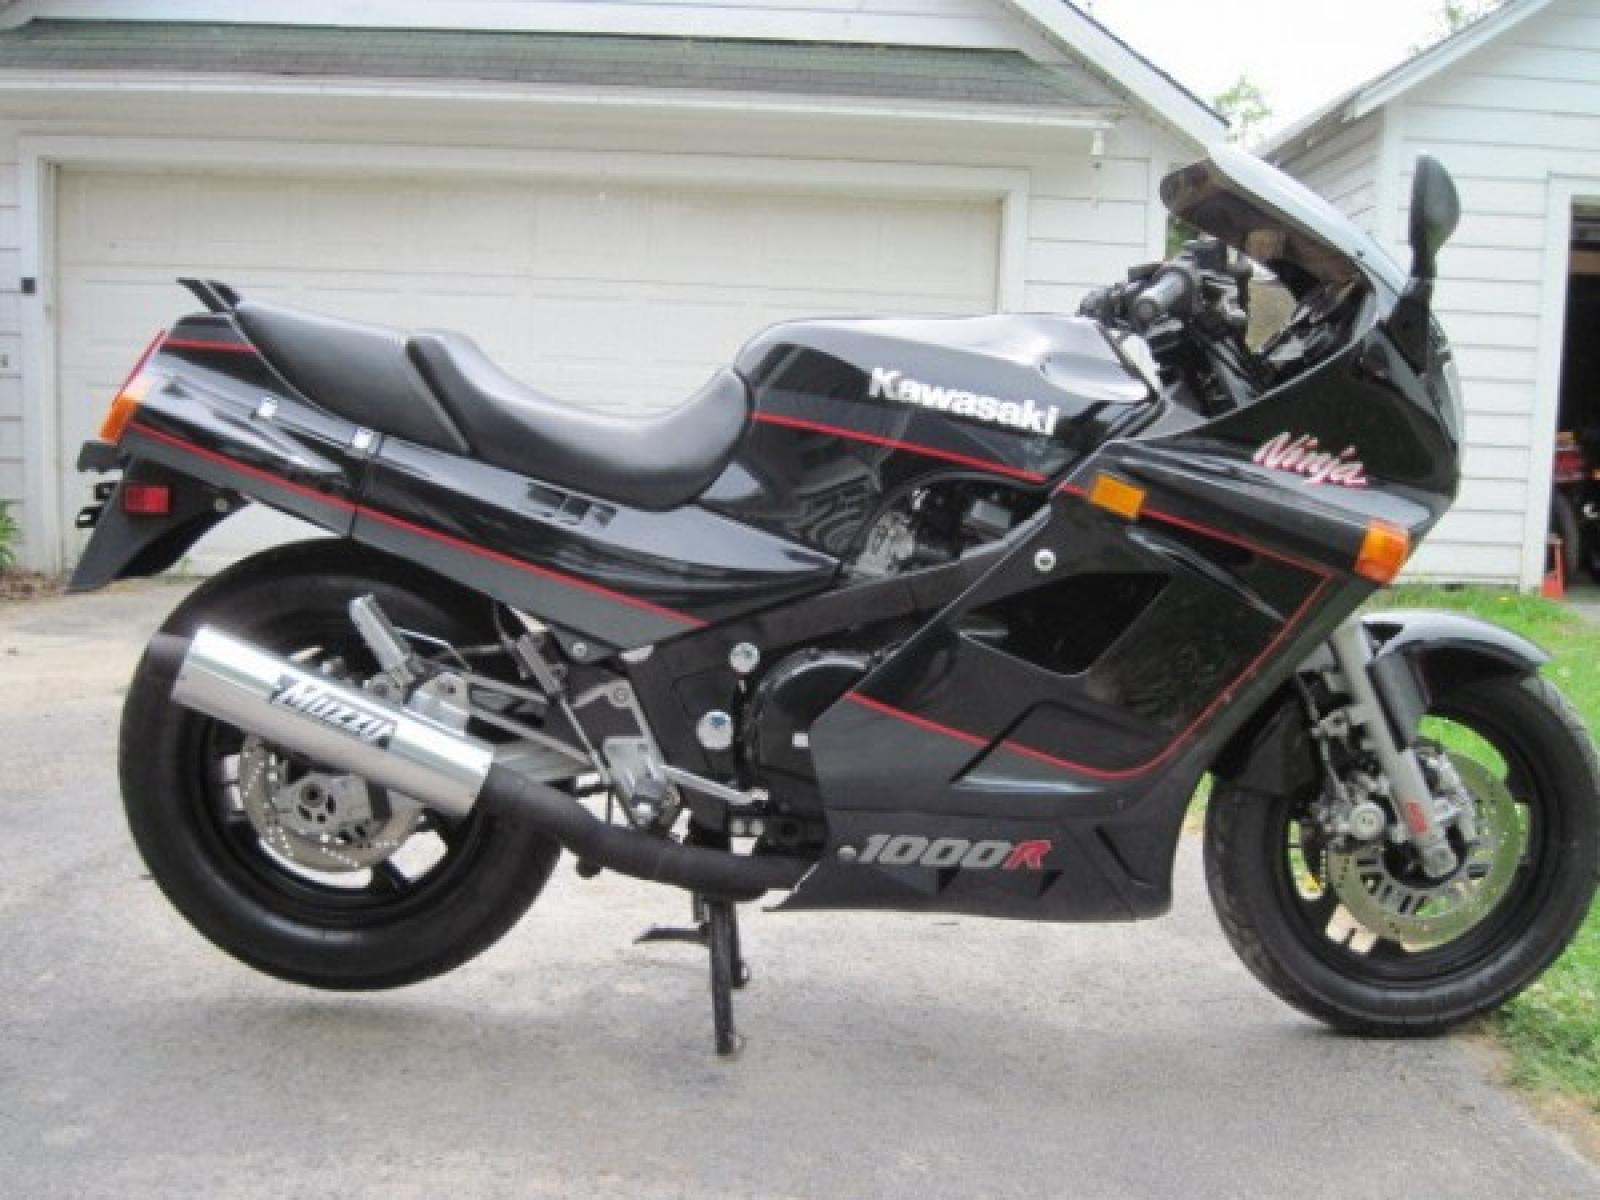 Kawasaki Ninja R Race Bike For Sale